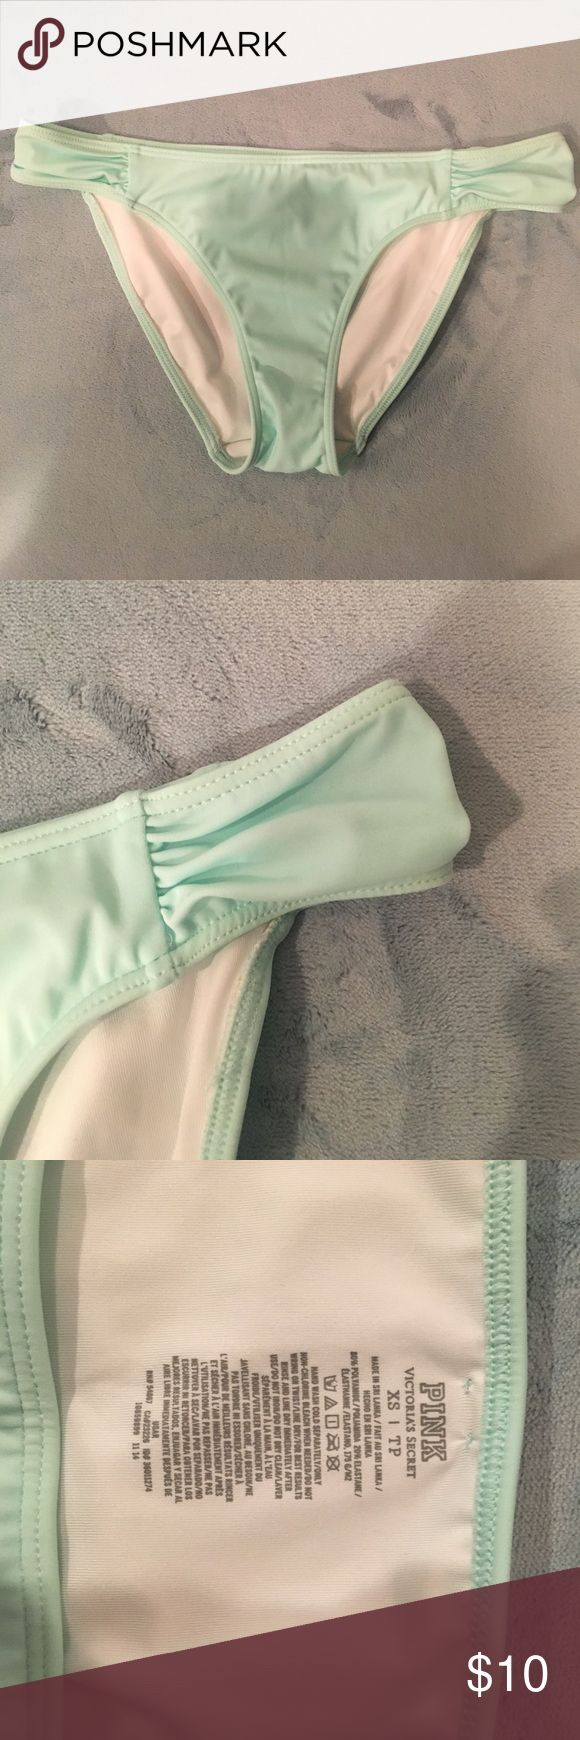 VS PINK Ruched Side Mint Bikini Bottoms Victoria Secret PINK Ruched Side Mint Bikini Bottoms. Great Condition. Offers Welcome. PINK Victoria's Secret Swim Bikinis